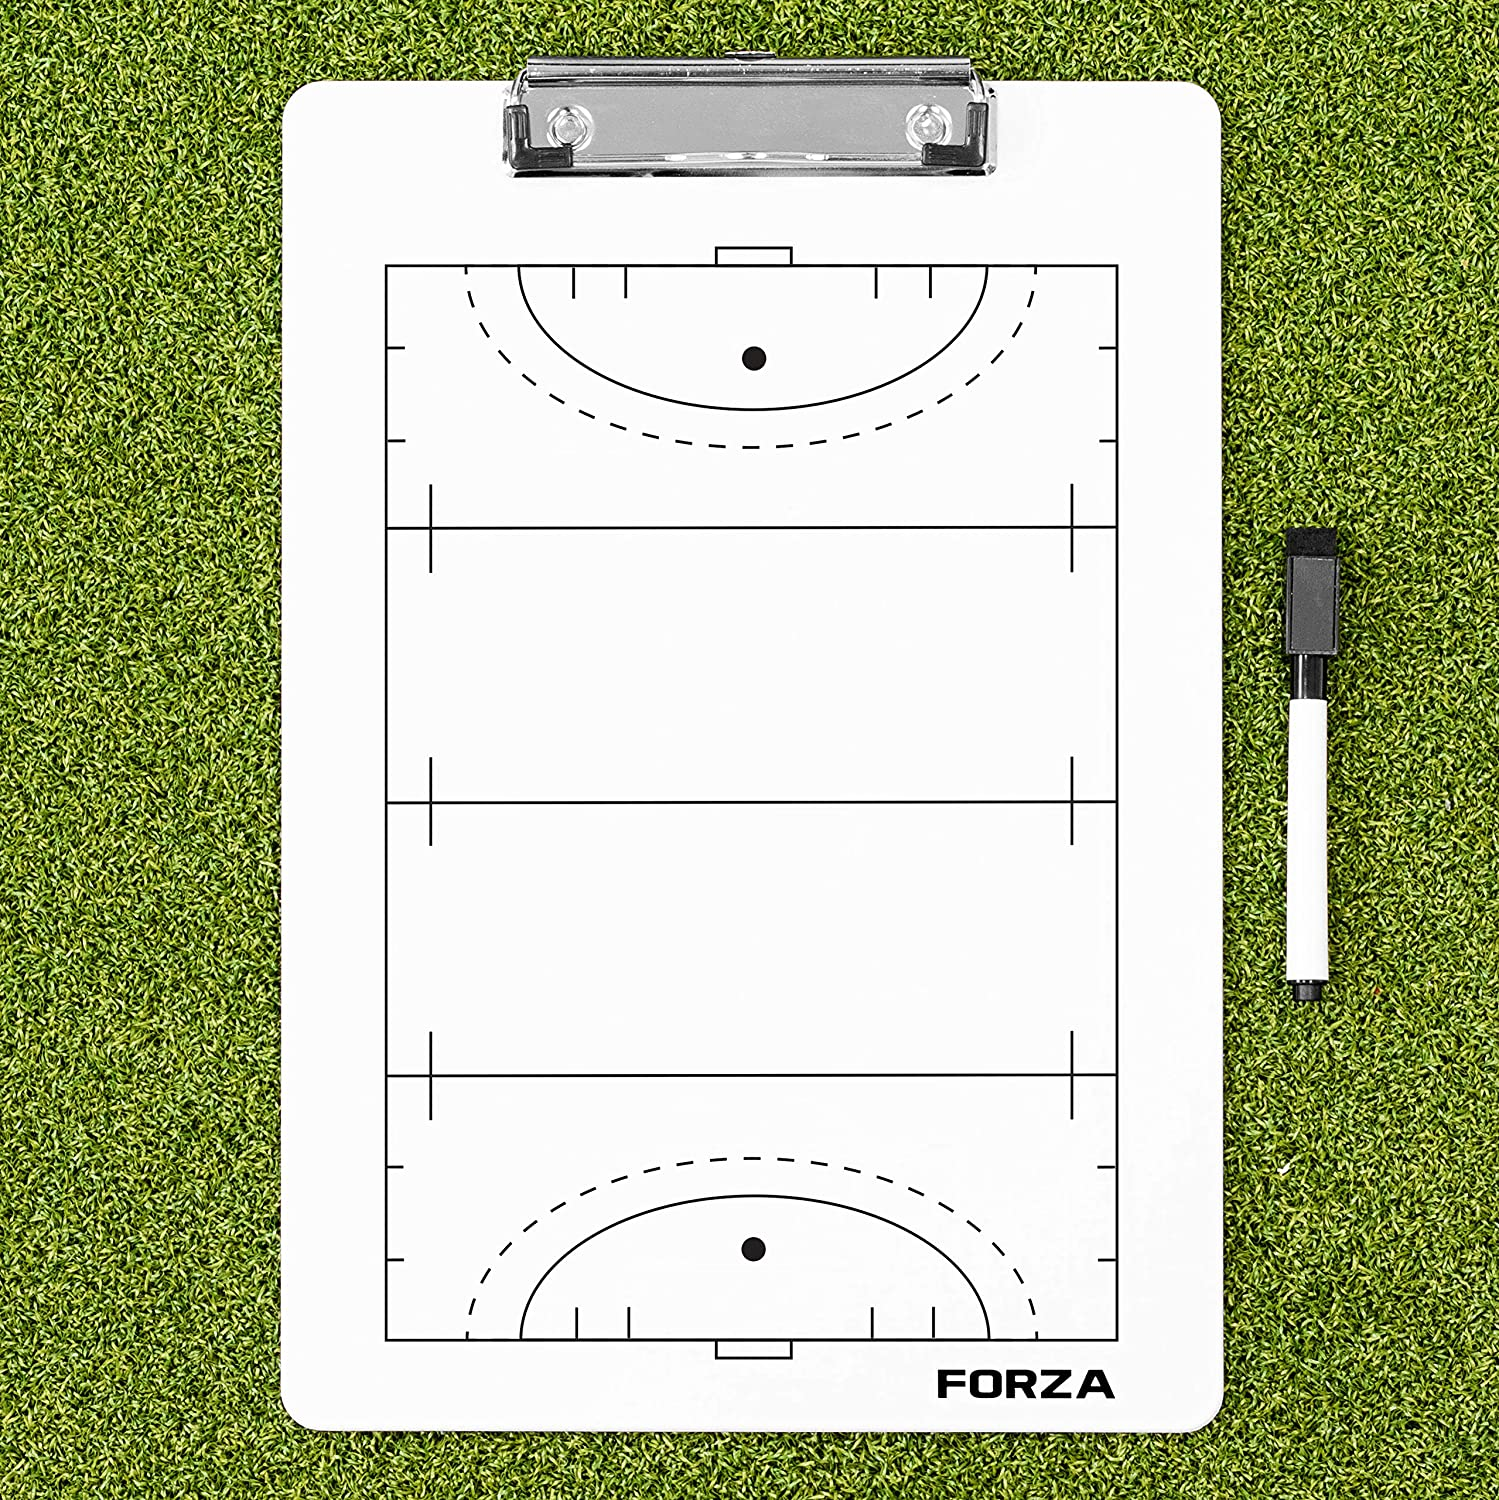 FORZA Coaching Clipboard Super intense SALE 13 Sports Available Ranking TOP6 Clean Tact Wipe